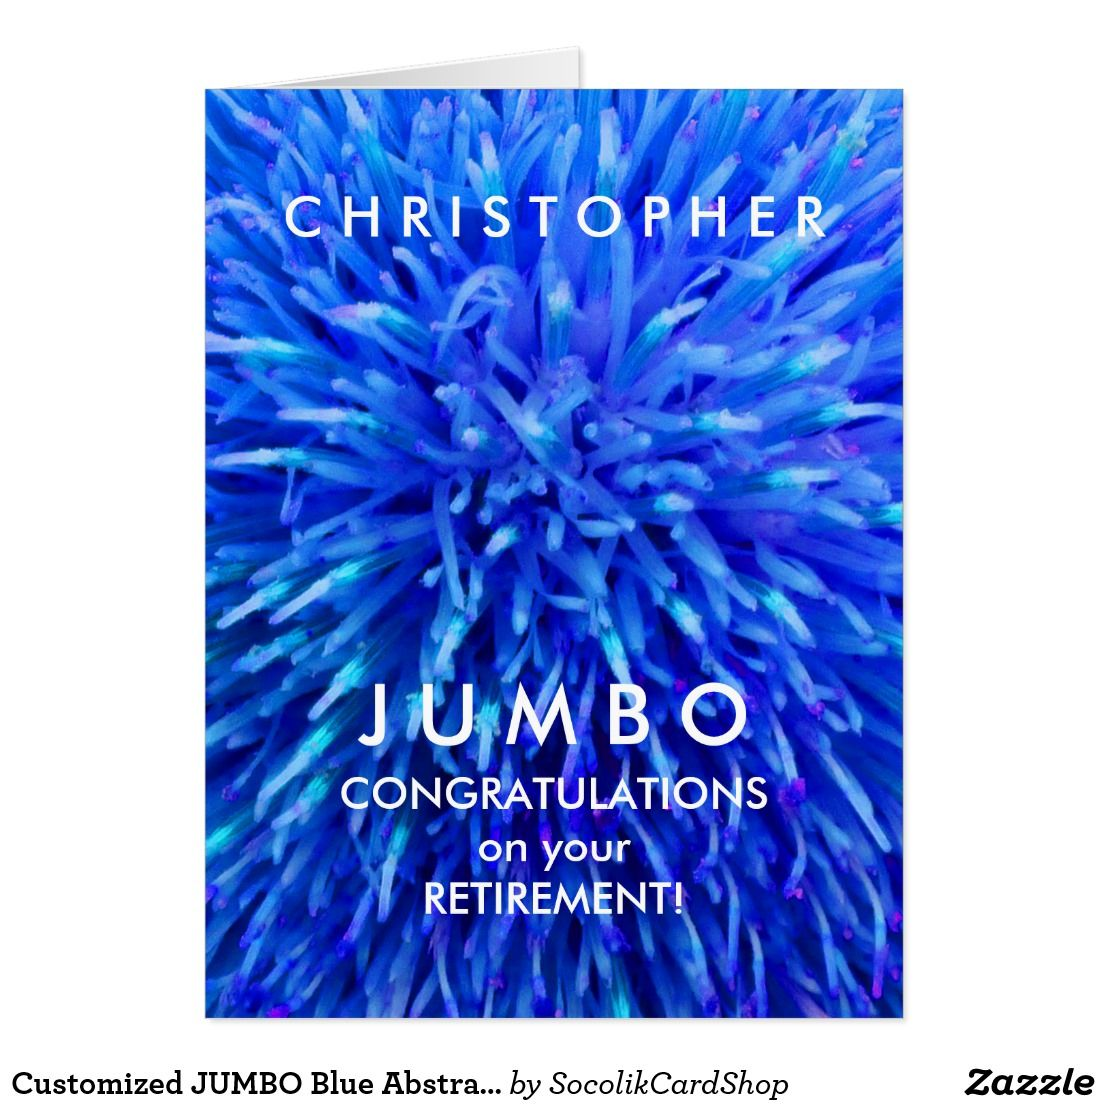 Customized jumbo blue abstract retirement card what a wonderful customized jumbo blue abstract retirement card what a wonderful personalized retirement congratulations greeting card m4hsunfo Gallery